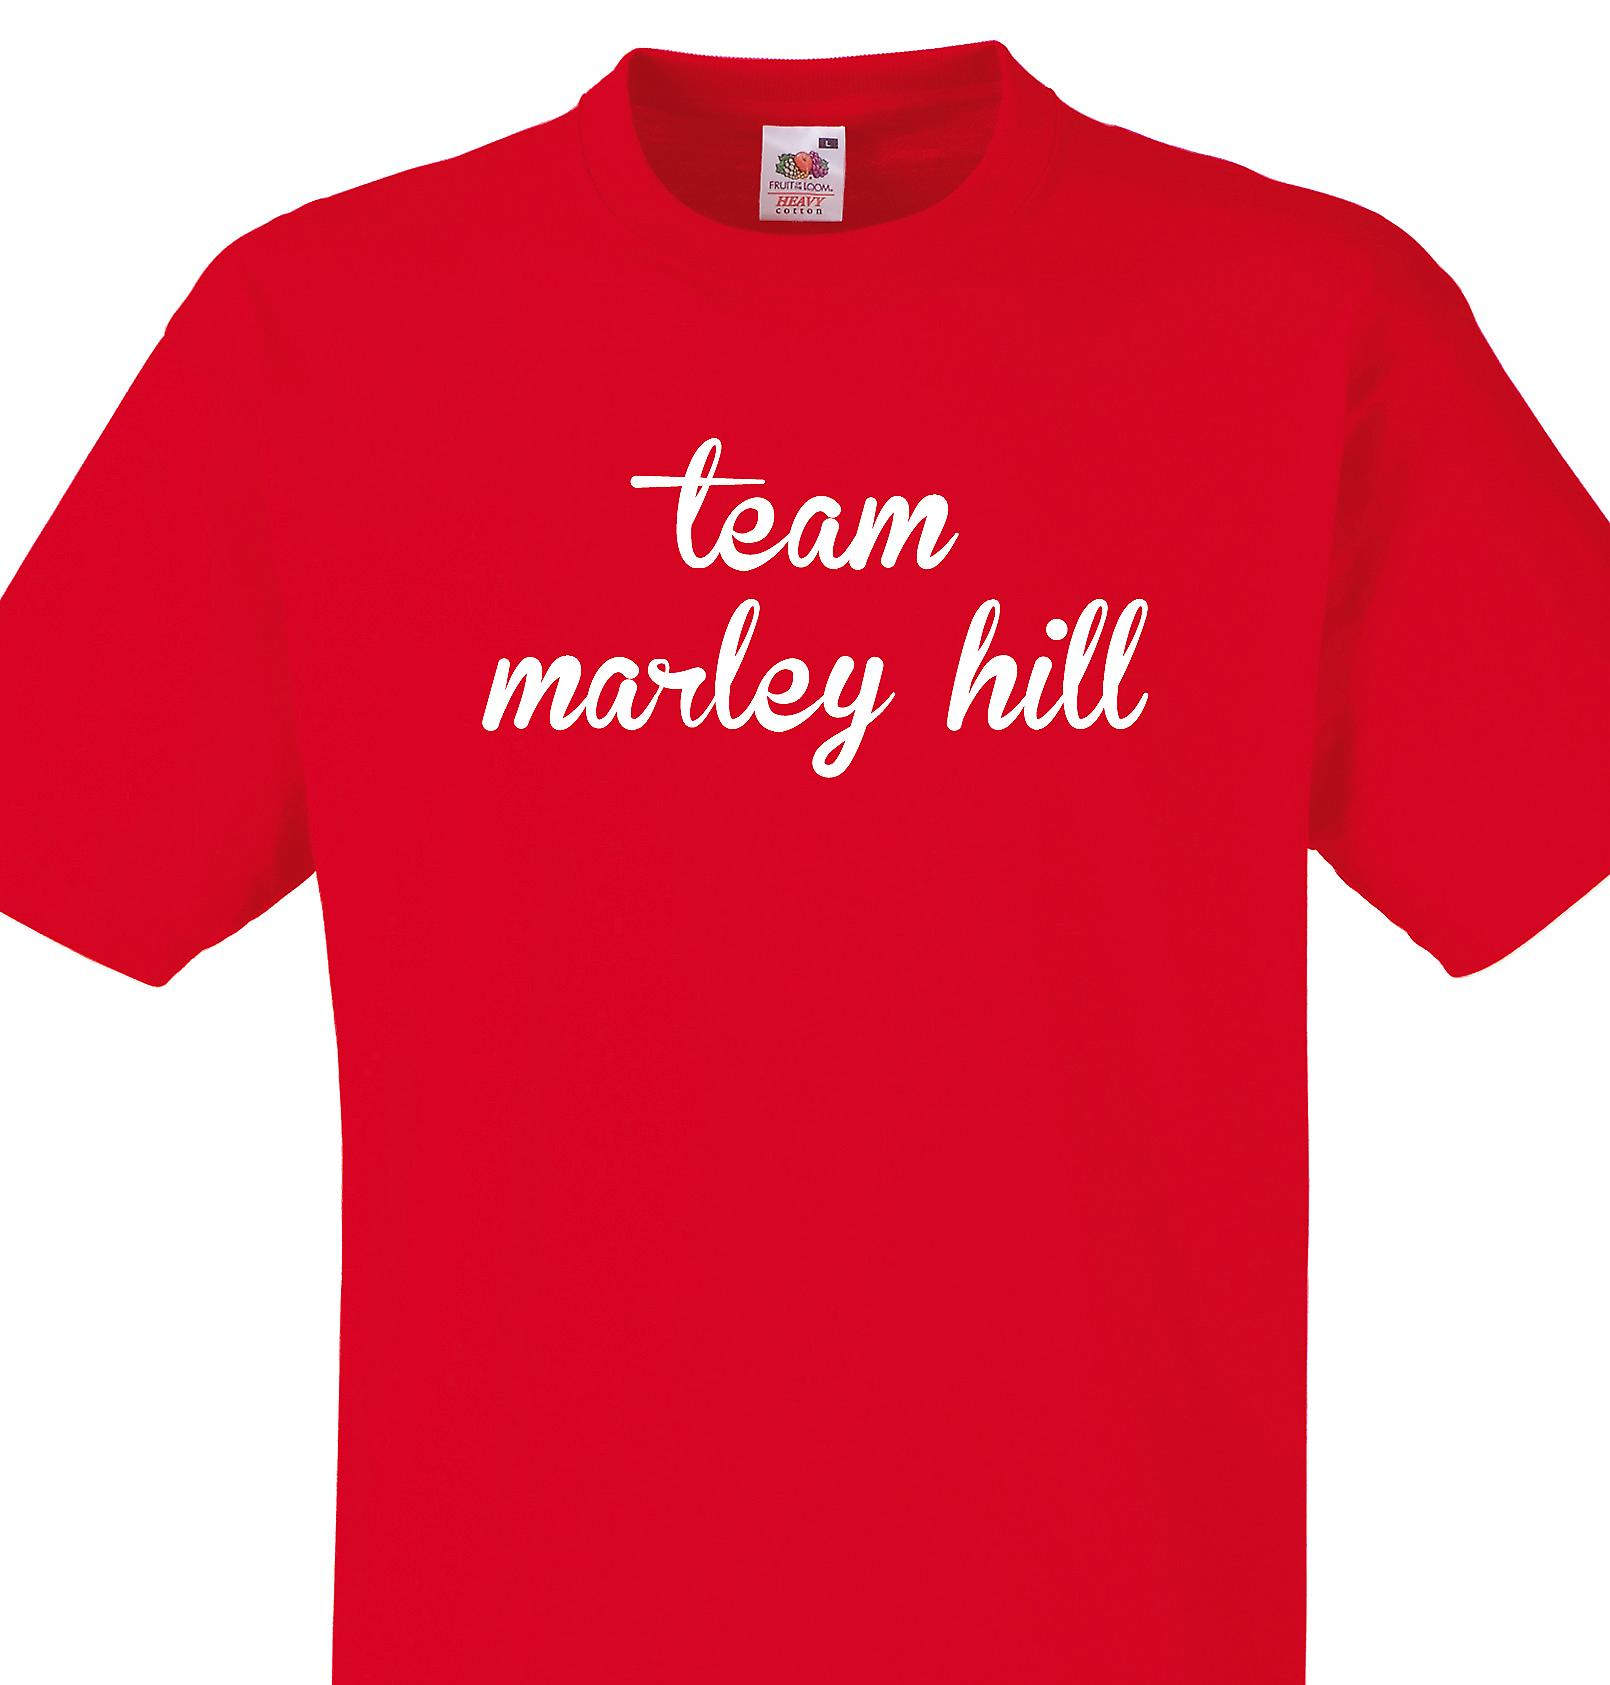 Team Marley hill Red T shirt